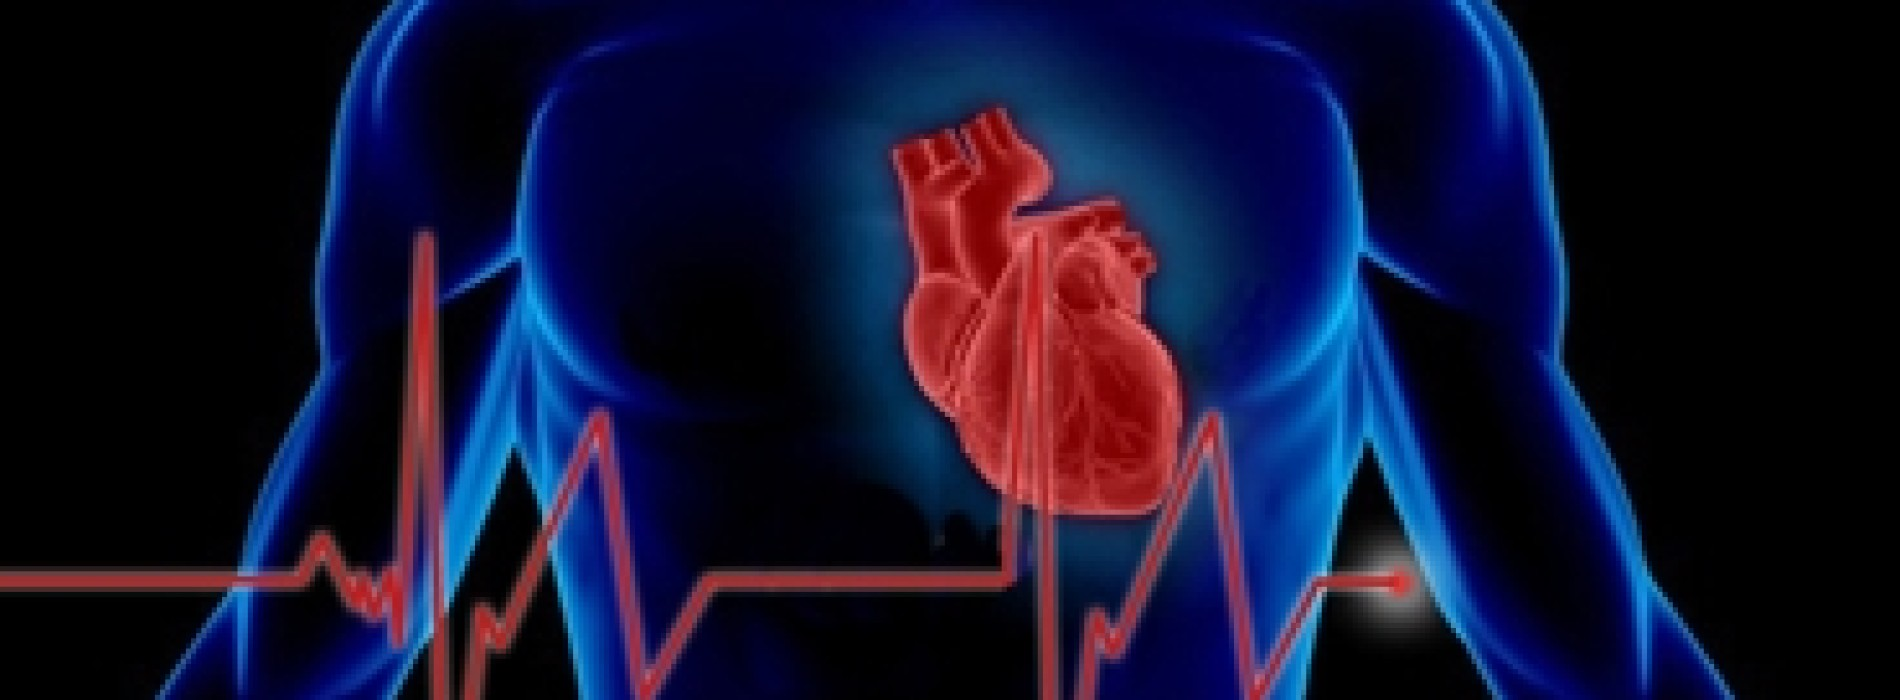 Deadly heart conditions to watch